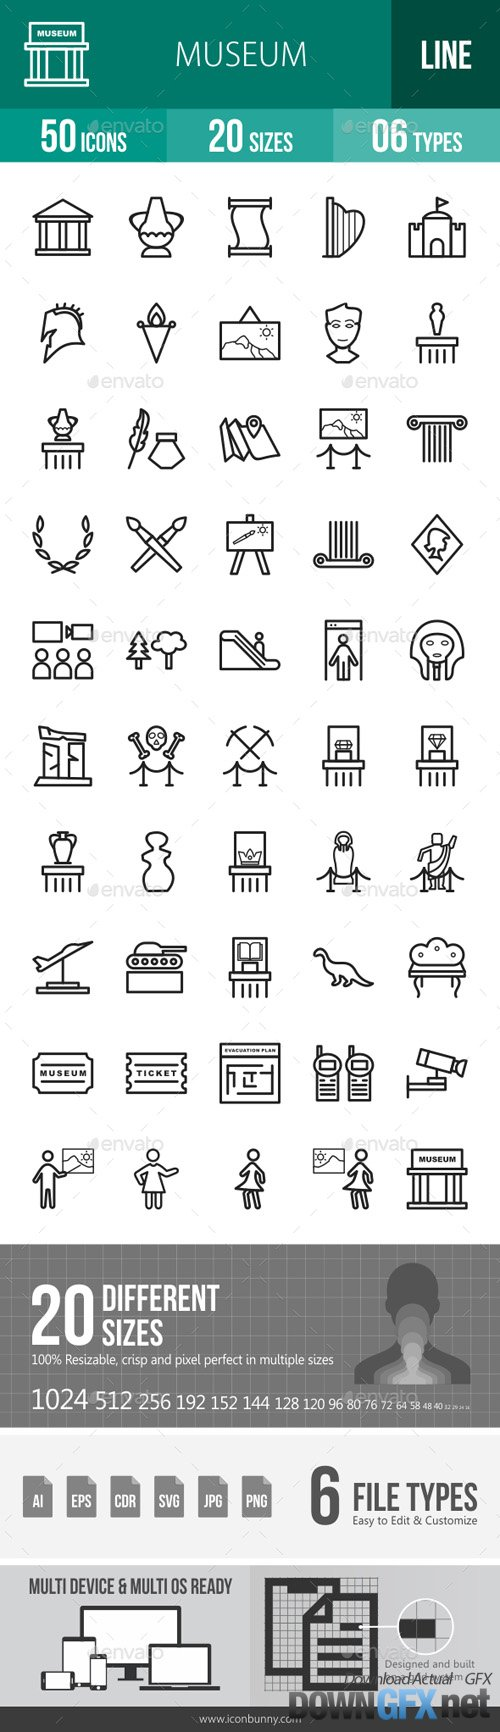 Museum Line Icons 17953567